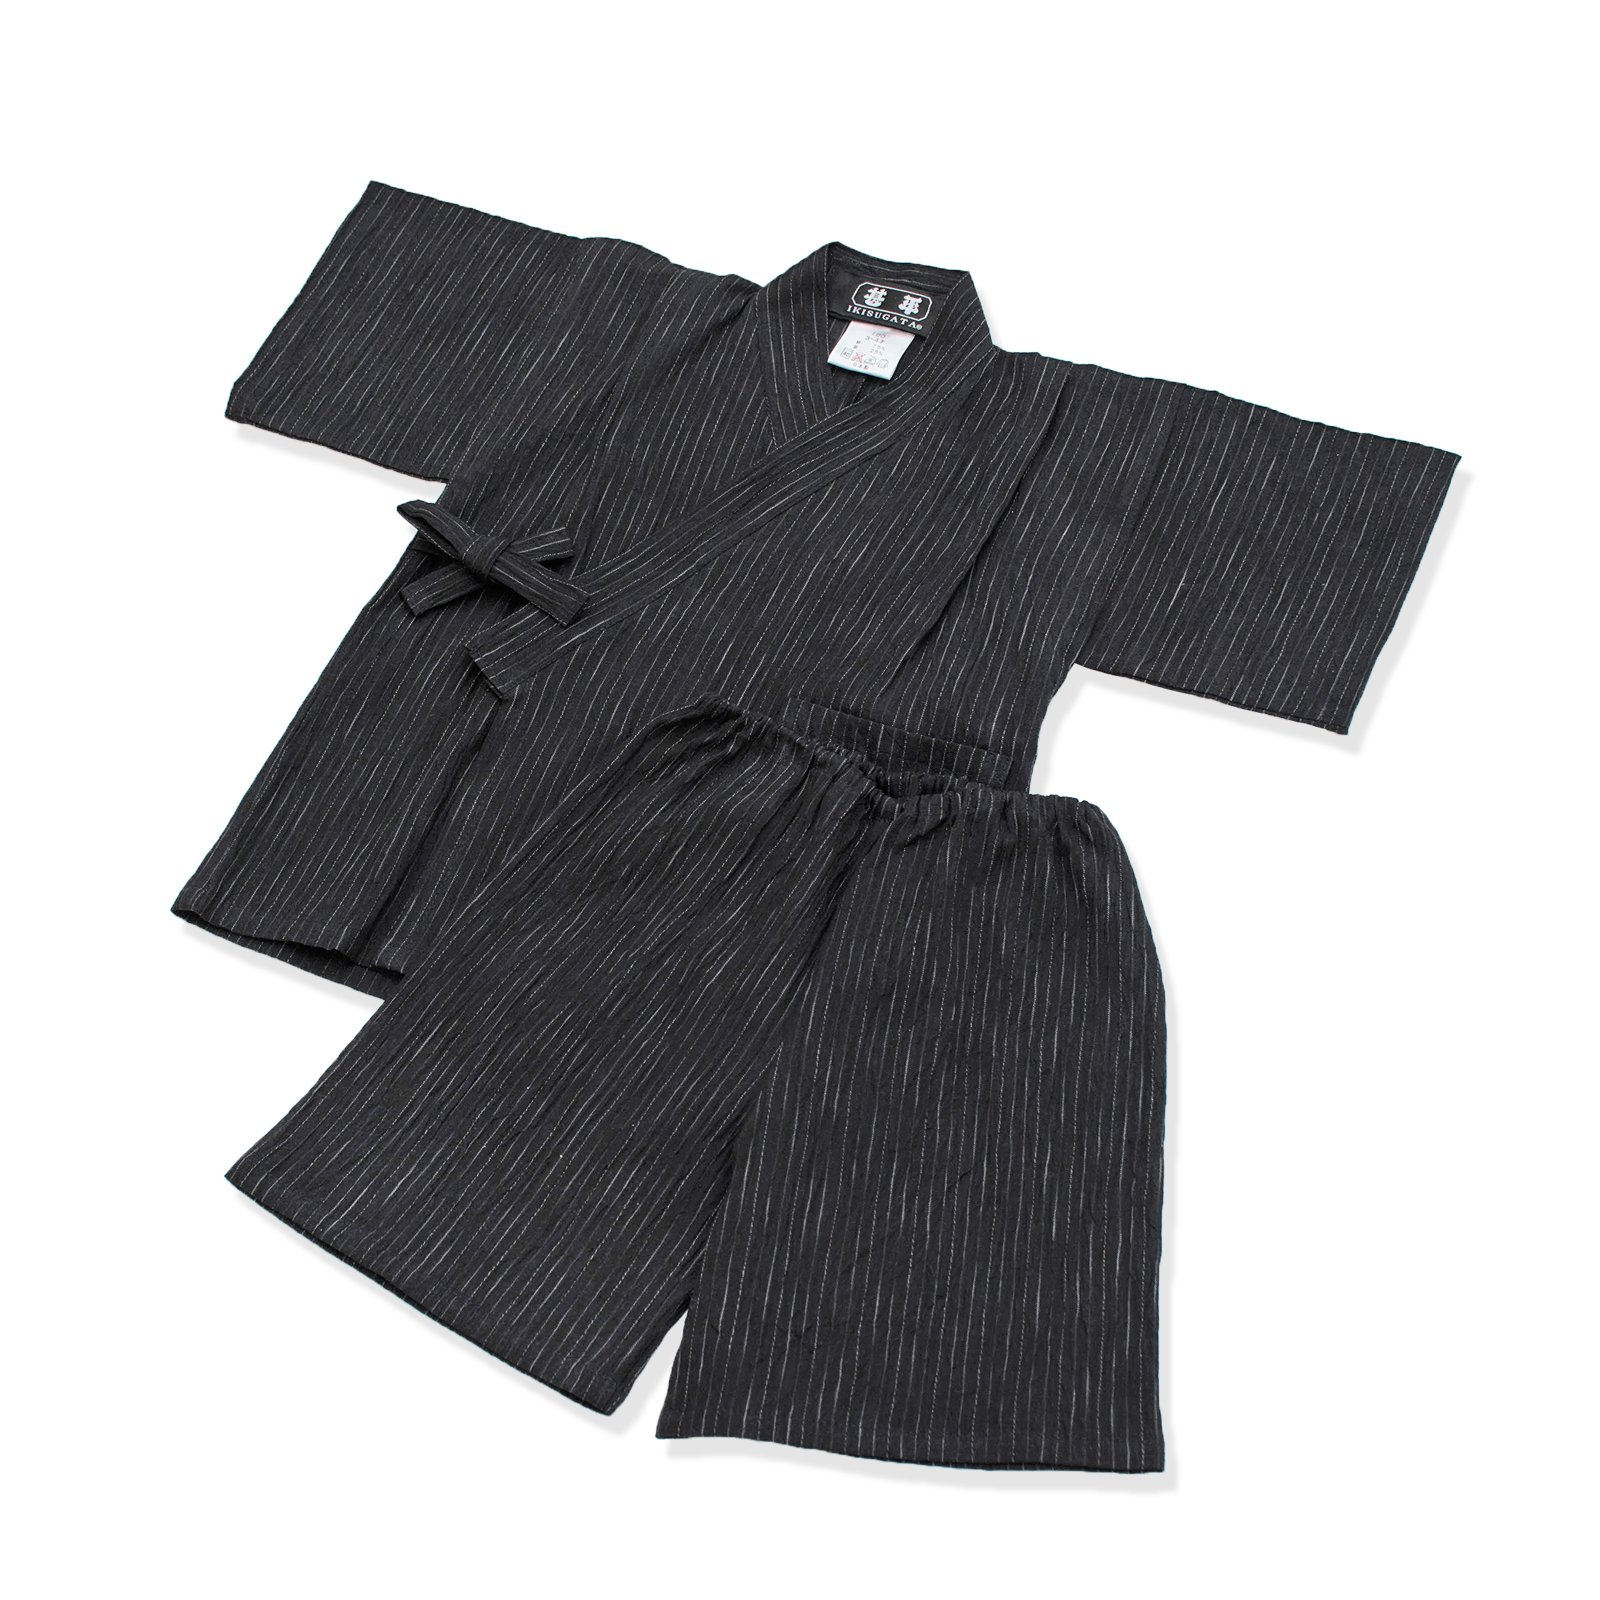 IKISUGATA Kids Jinbei Summertime Casual Wear Omi Chijimi Kasuriori 120 Black